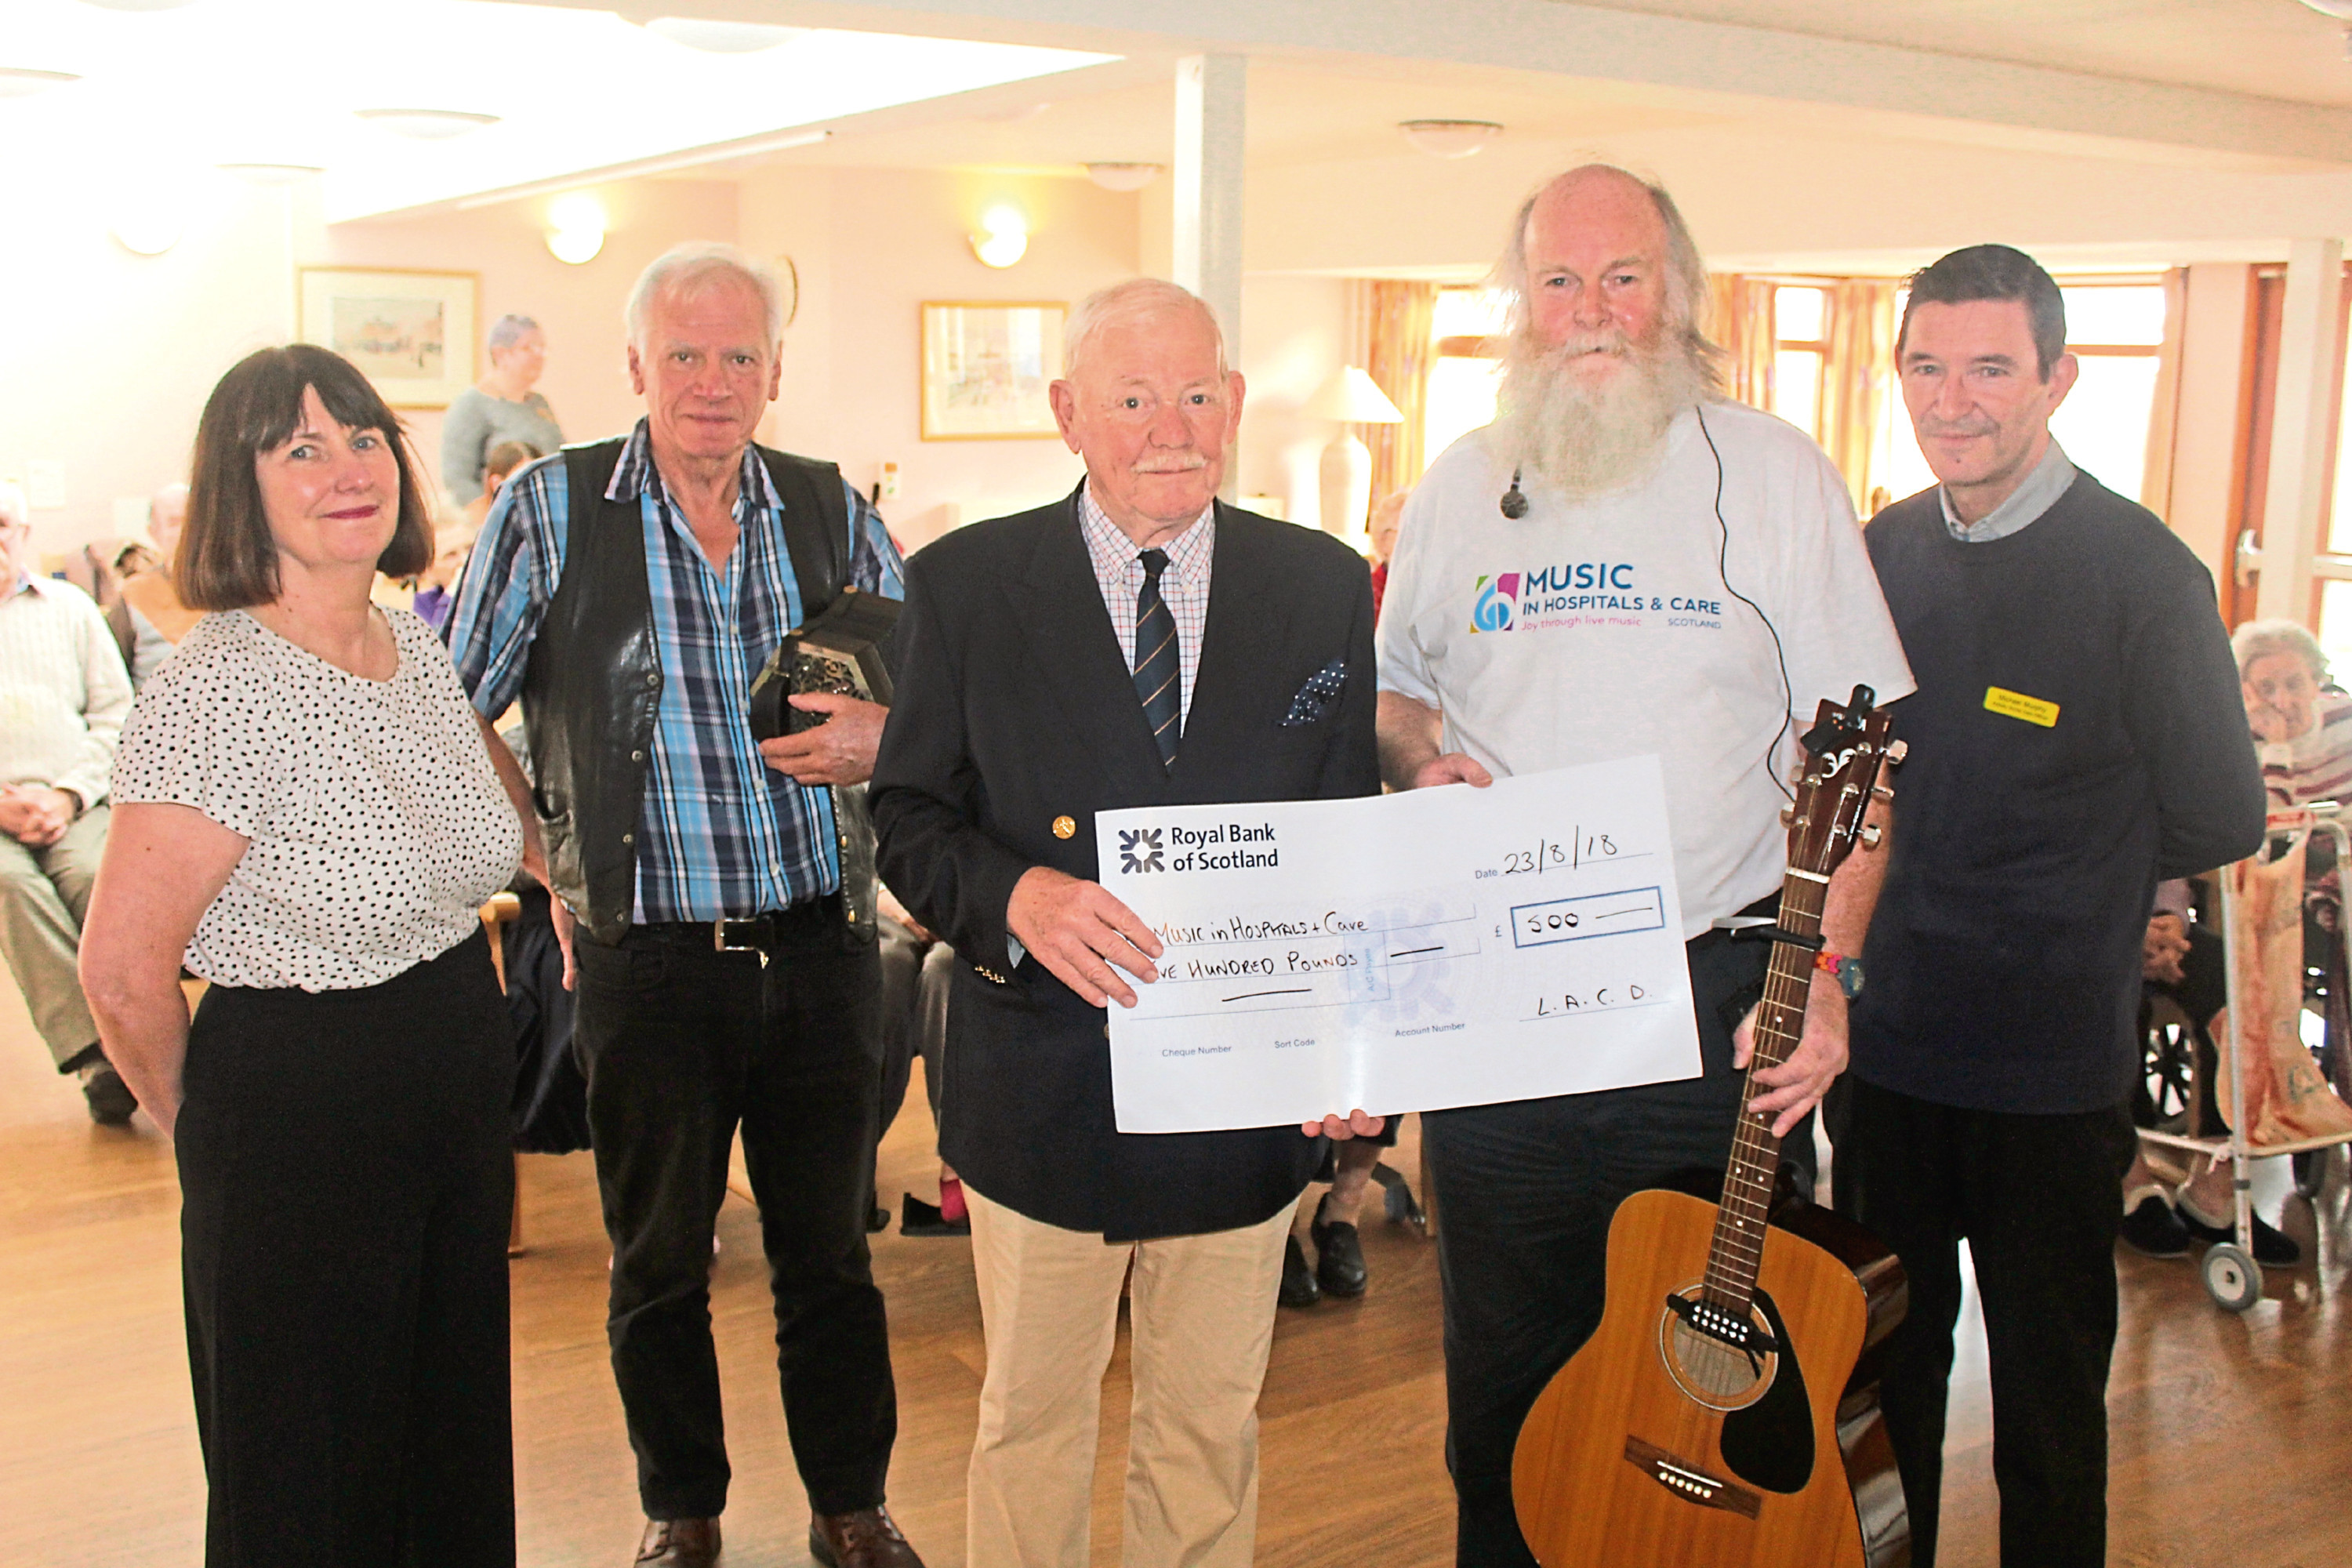 Pictured are Angela Doran (music development officer), Davie McMartin (from band On the Wagon), Sinclair Aitken (chairman of Leisure and Culture Dundee), Derek Richardson (Music in Hospitals & Care) and Michael Murphy (activity social care officer).